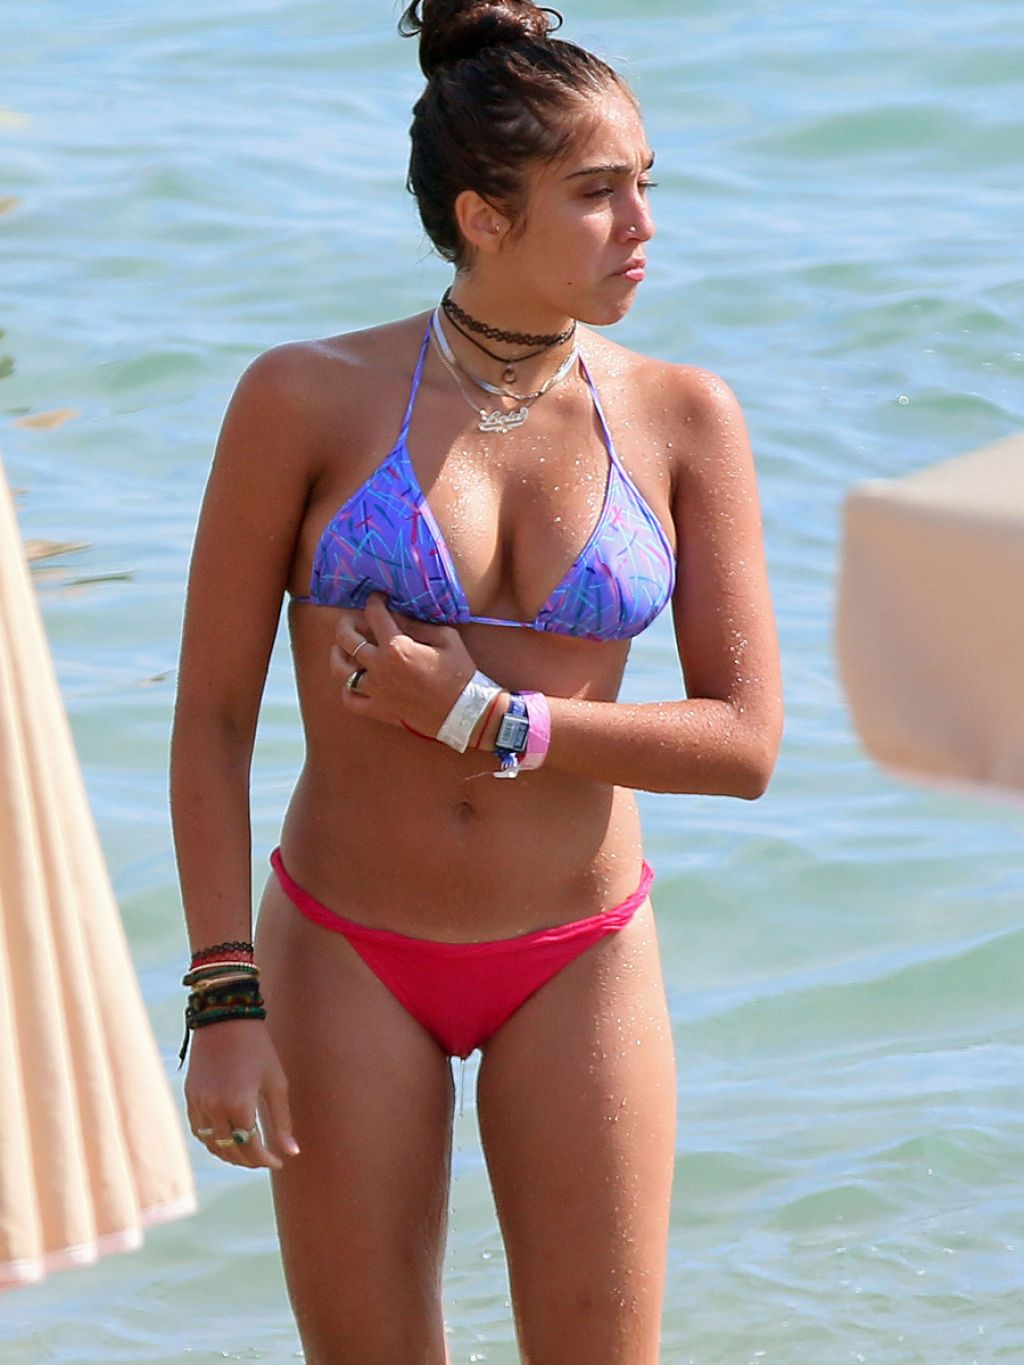 Lourdes Leon Hot in a Bikini at the Beach in Cannes - August 2014